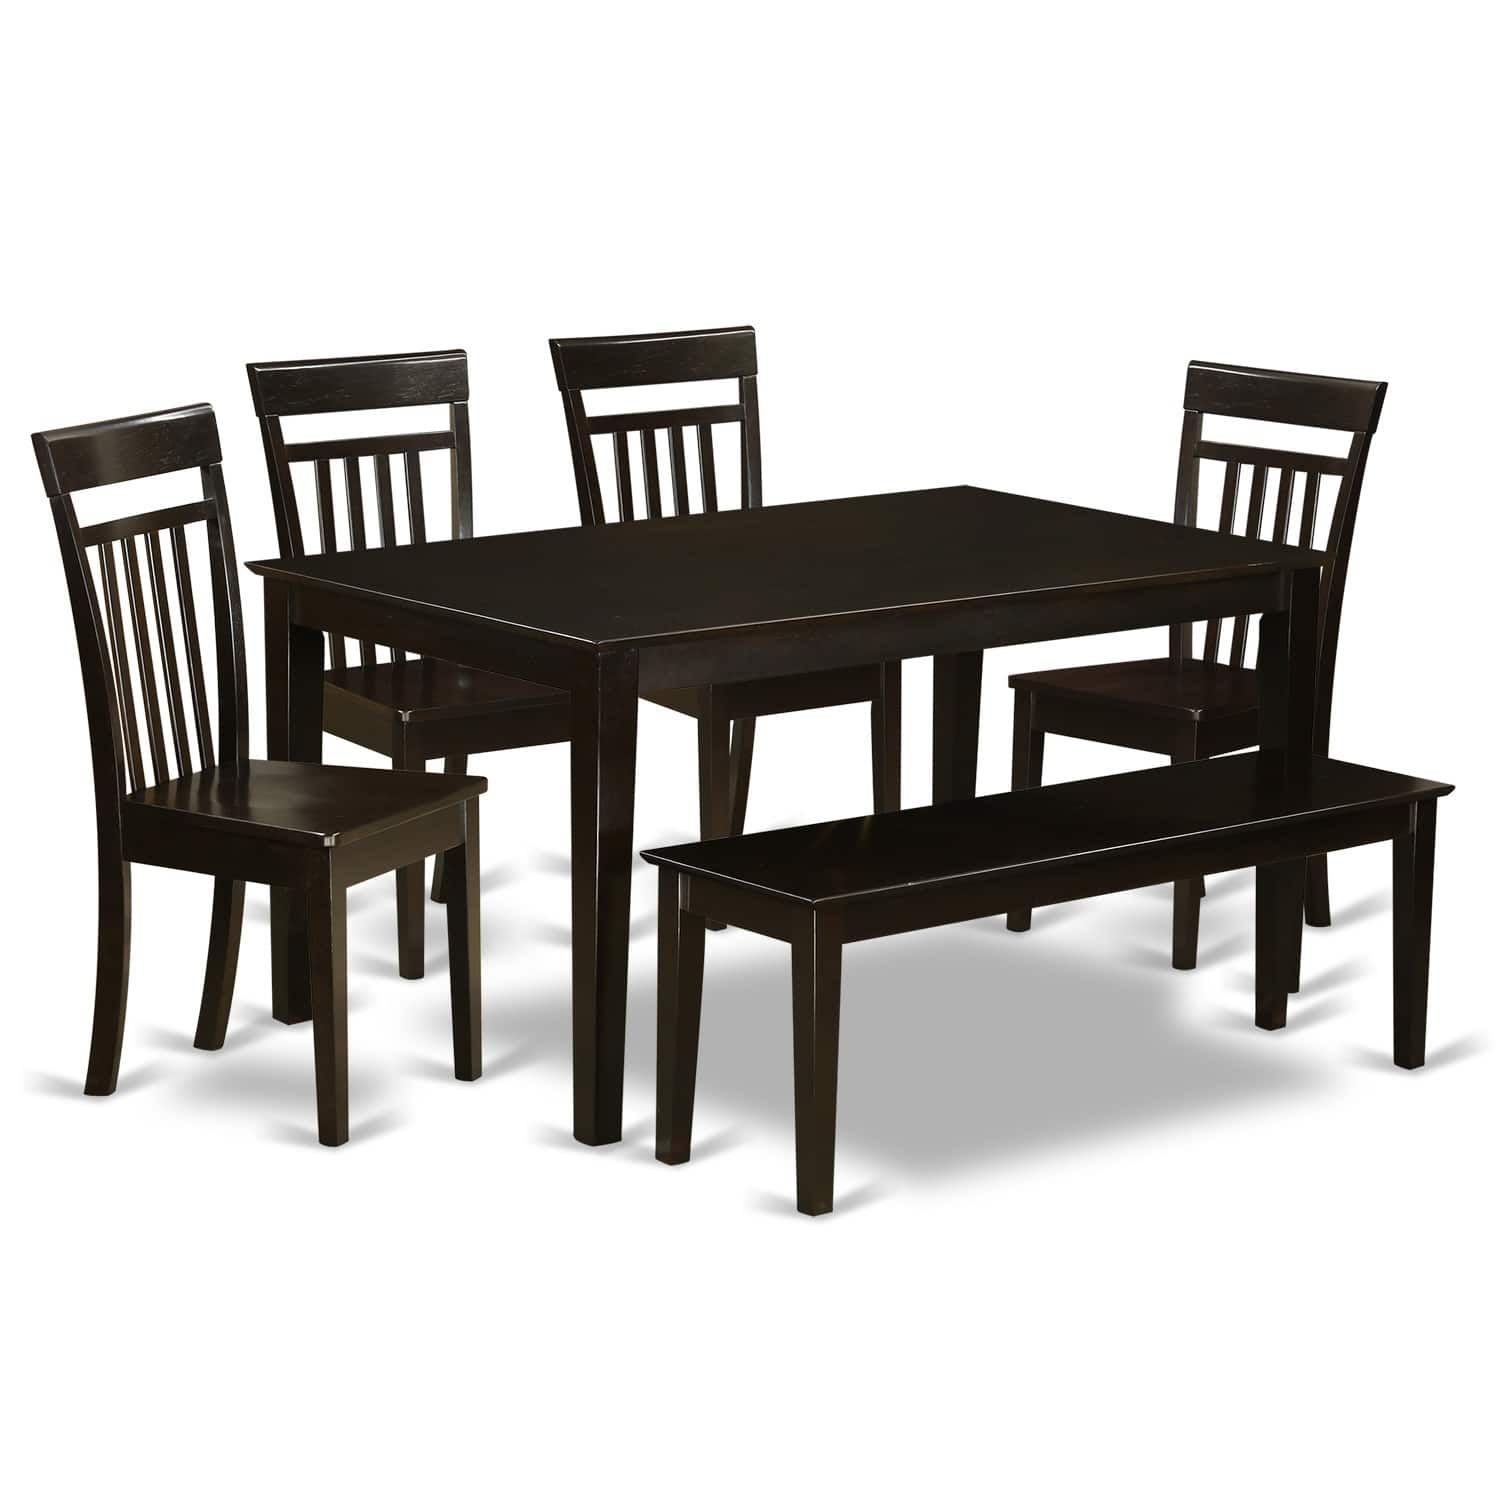 CAP6S CAP 6 PC Dining set Table and 4 Kitchen Chairs plus a bench